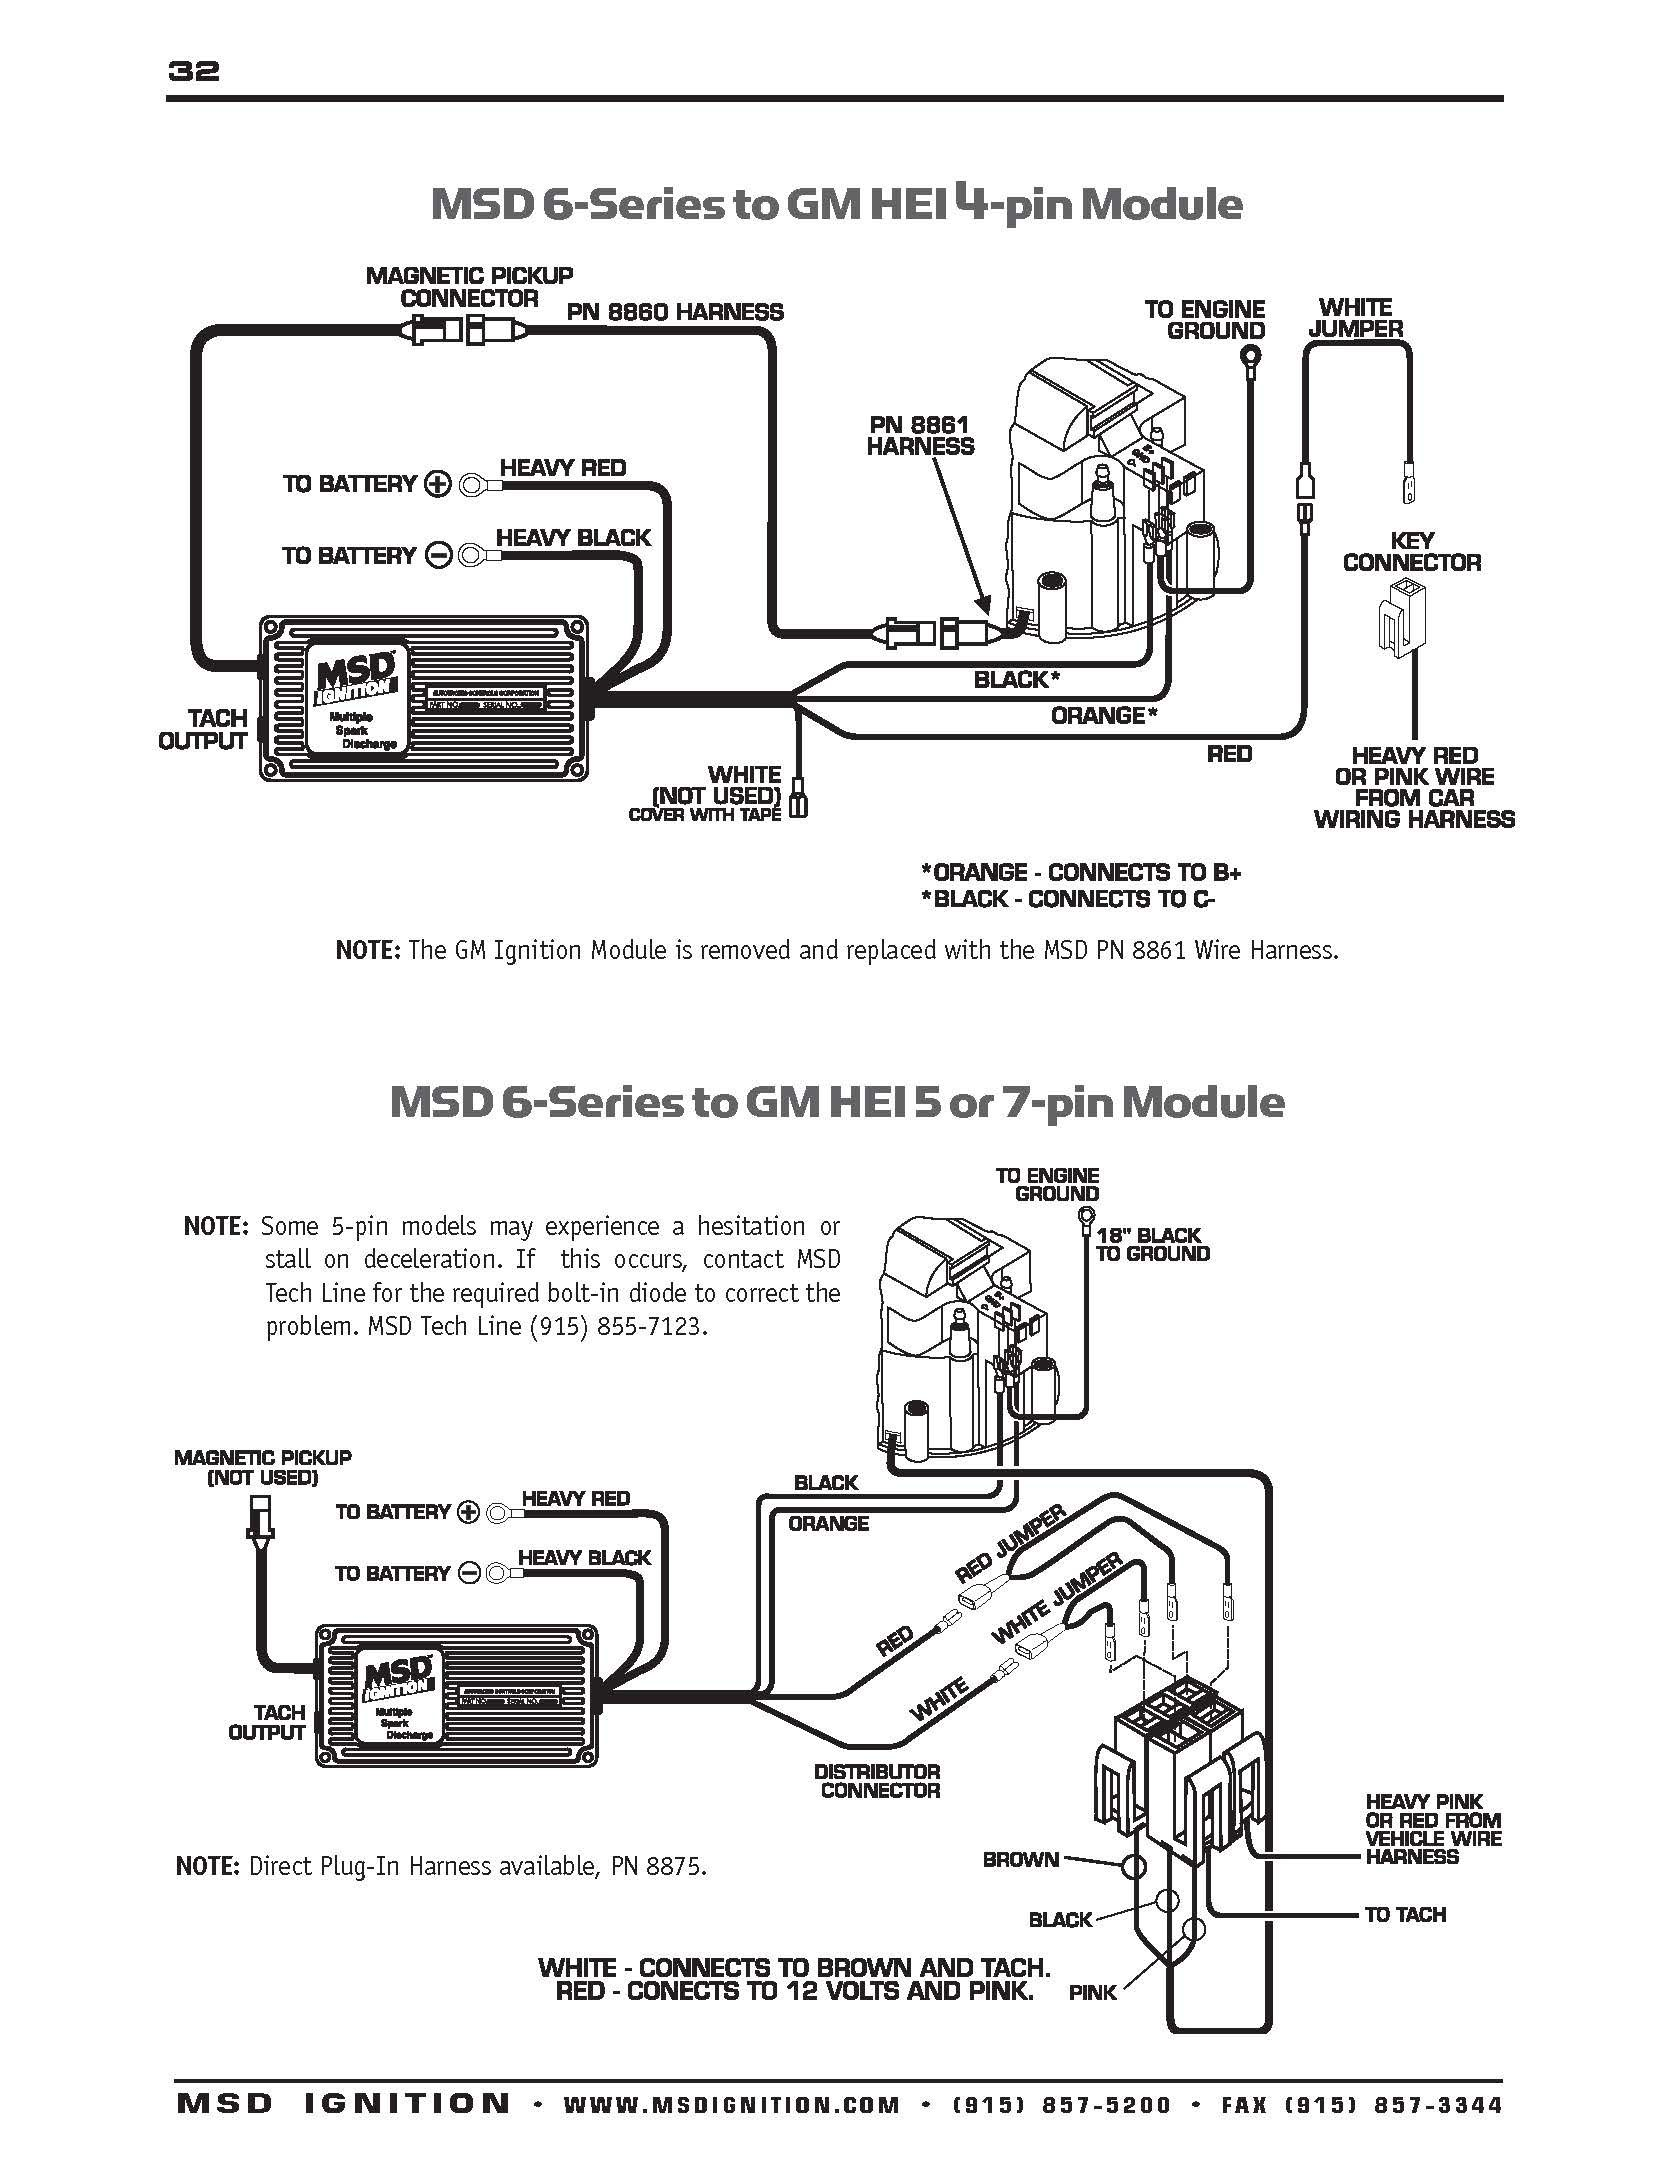 msd ignition wiring diagrams 1966 chevelle diagram, mechanical Auto Repair Wiring Diagrams